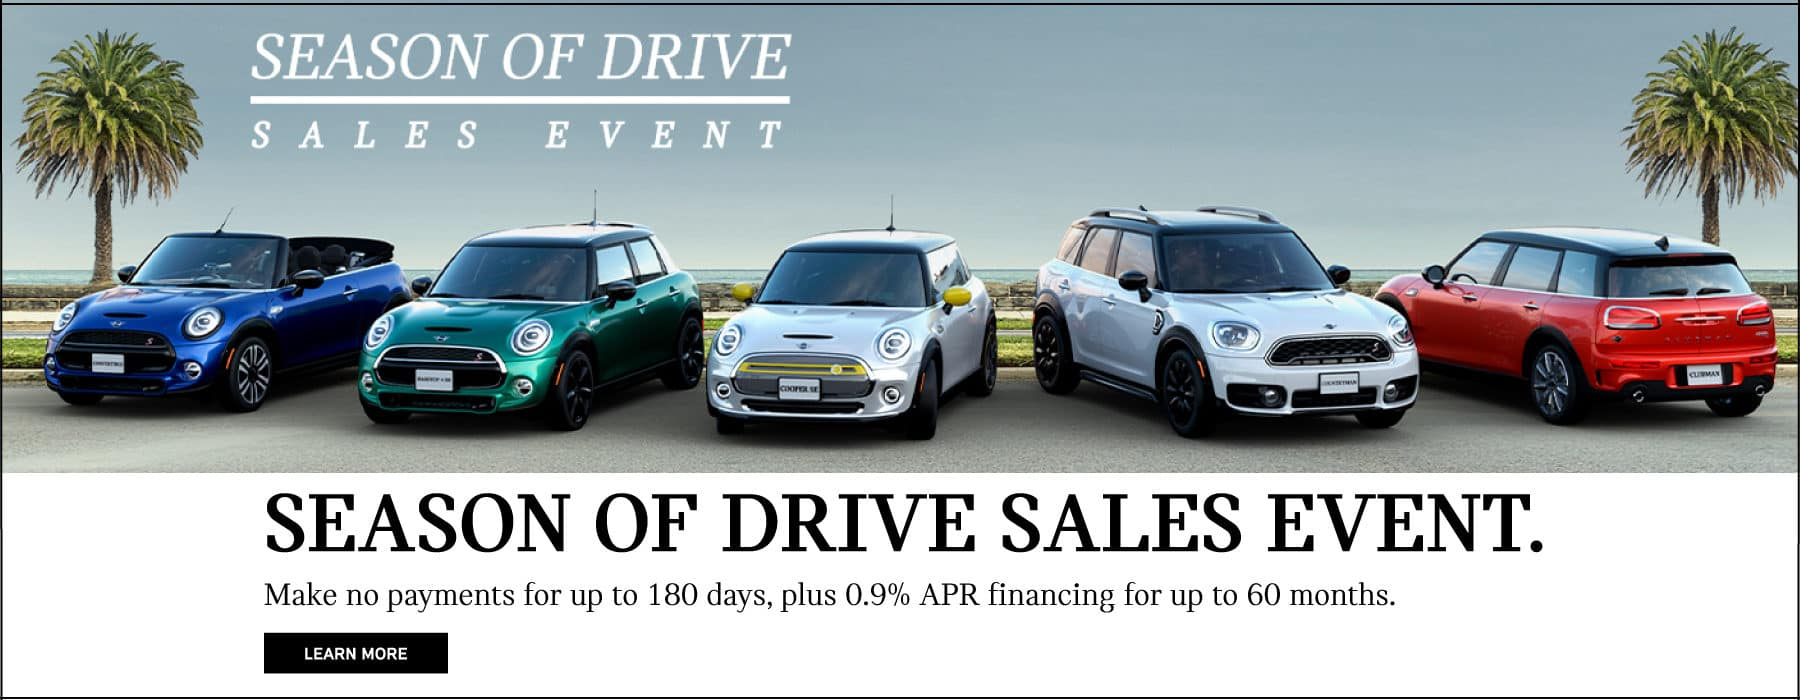 season of drive sales event. make no payments for up to 180 days, plus 0.9% apr financing for up to 60 months